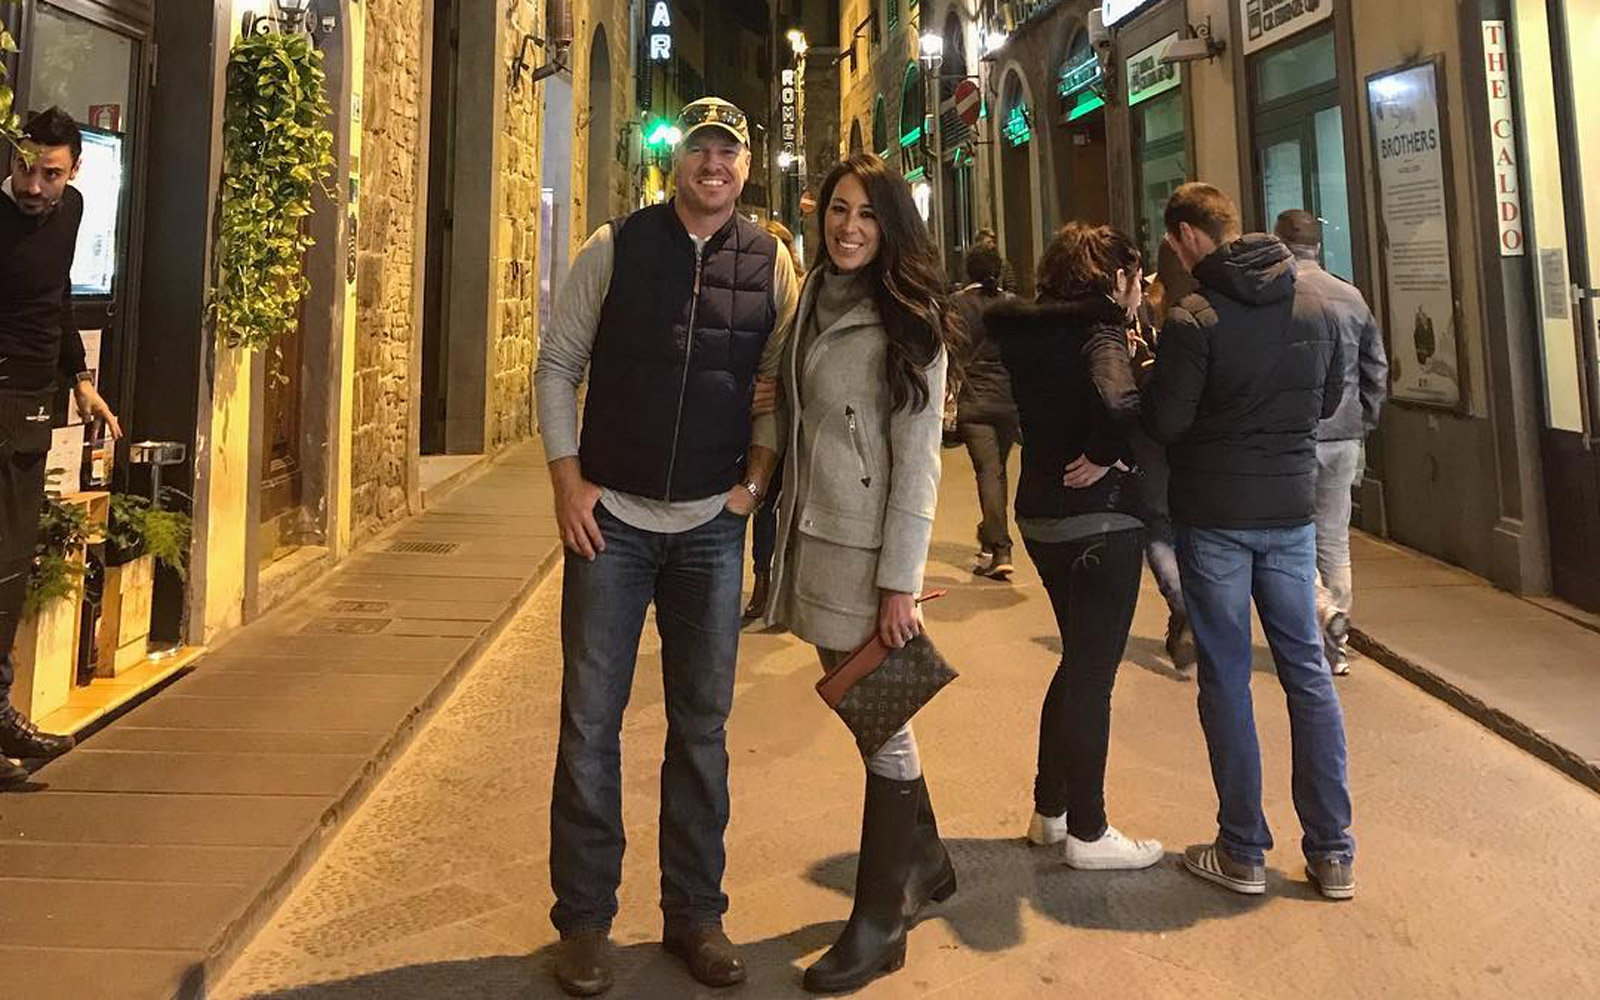 After Wrapping 'Fixer Upper,' Chip and Joanna Gaines 'Slept for 15 Hours' on Vacation in Italy